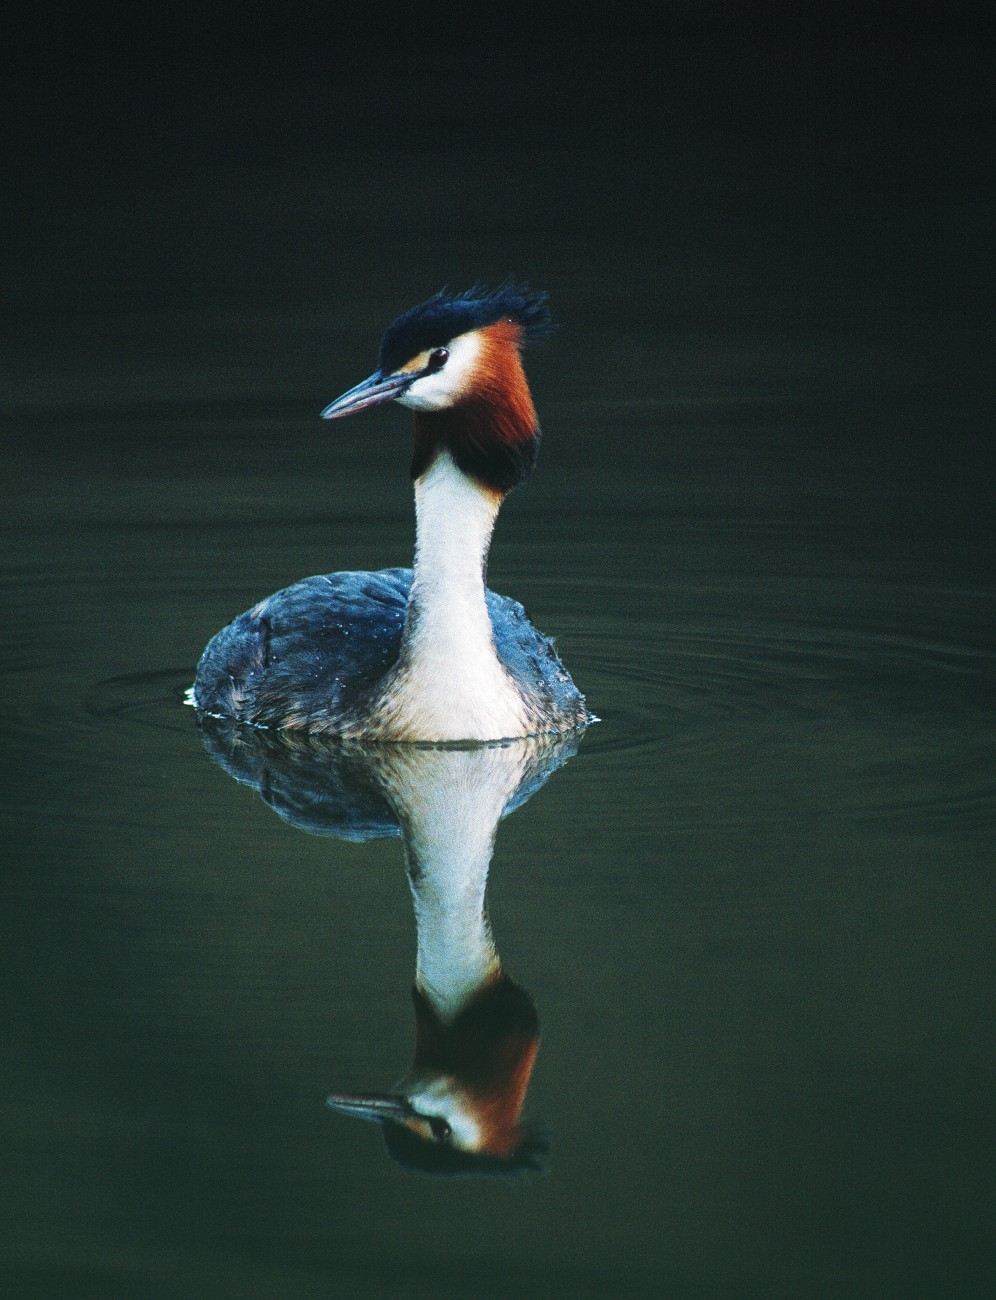 Although grebes are capable of flight-even long flights-their wings are small and they are most at home on water. Unlike the majority of birds, they have almost no tail, and the legs are positioned so far back on the body as to make walking awkward.